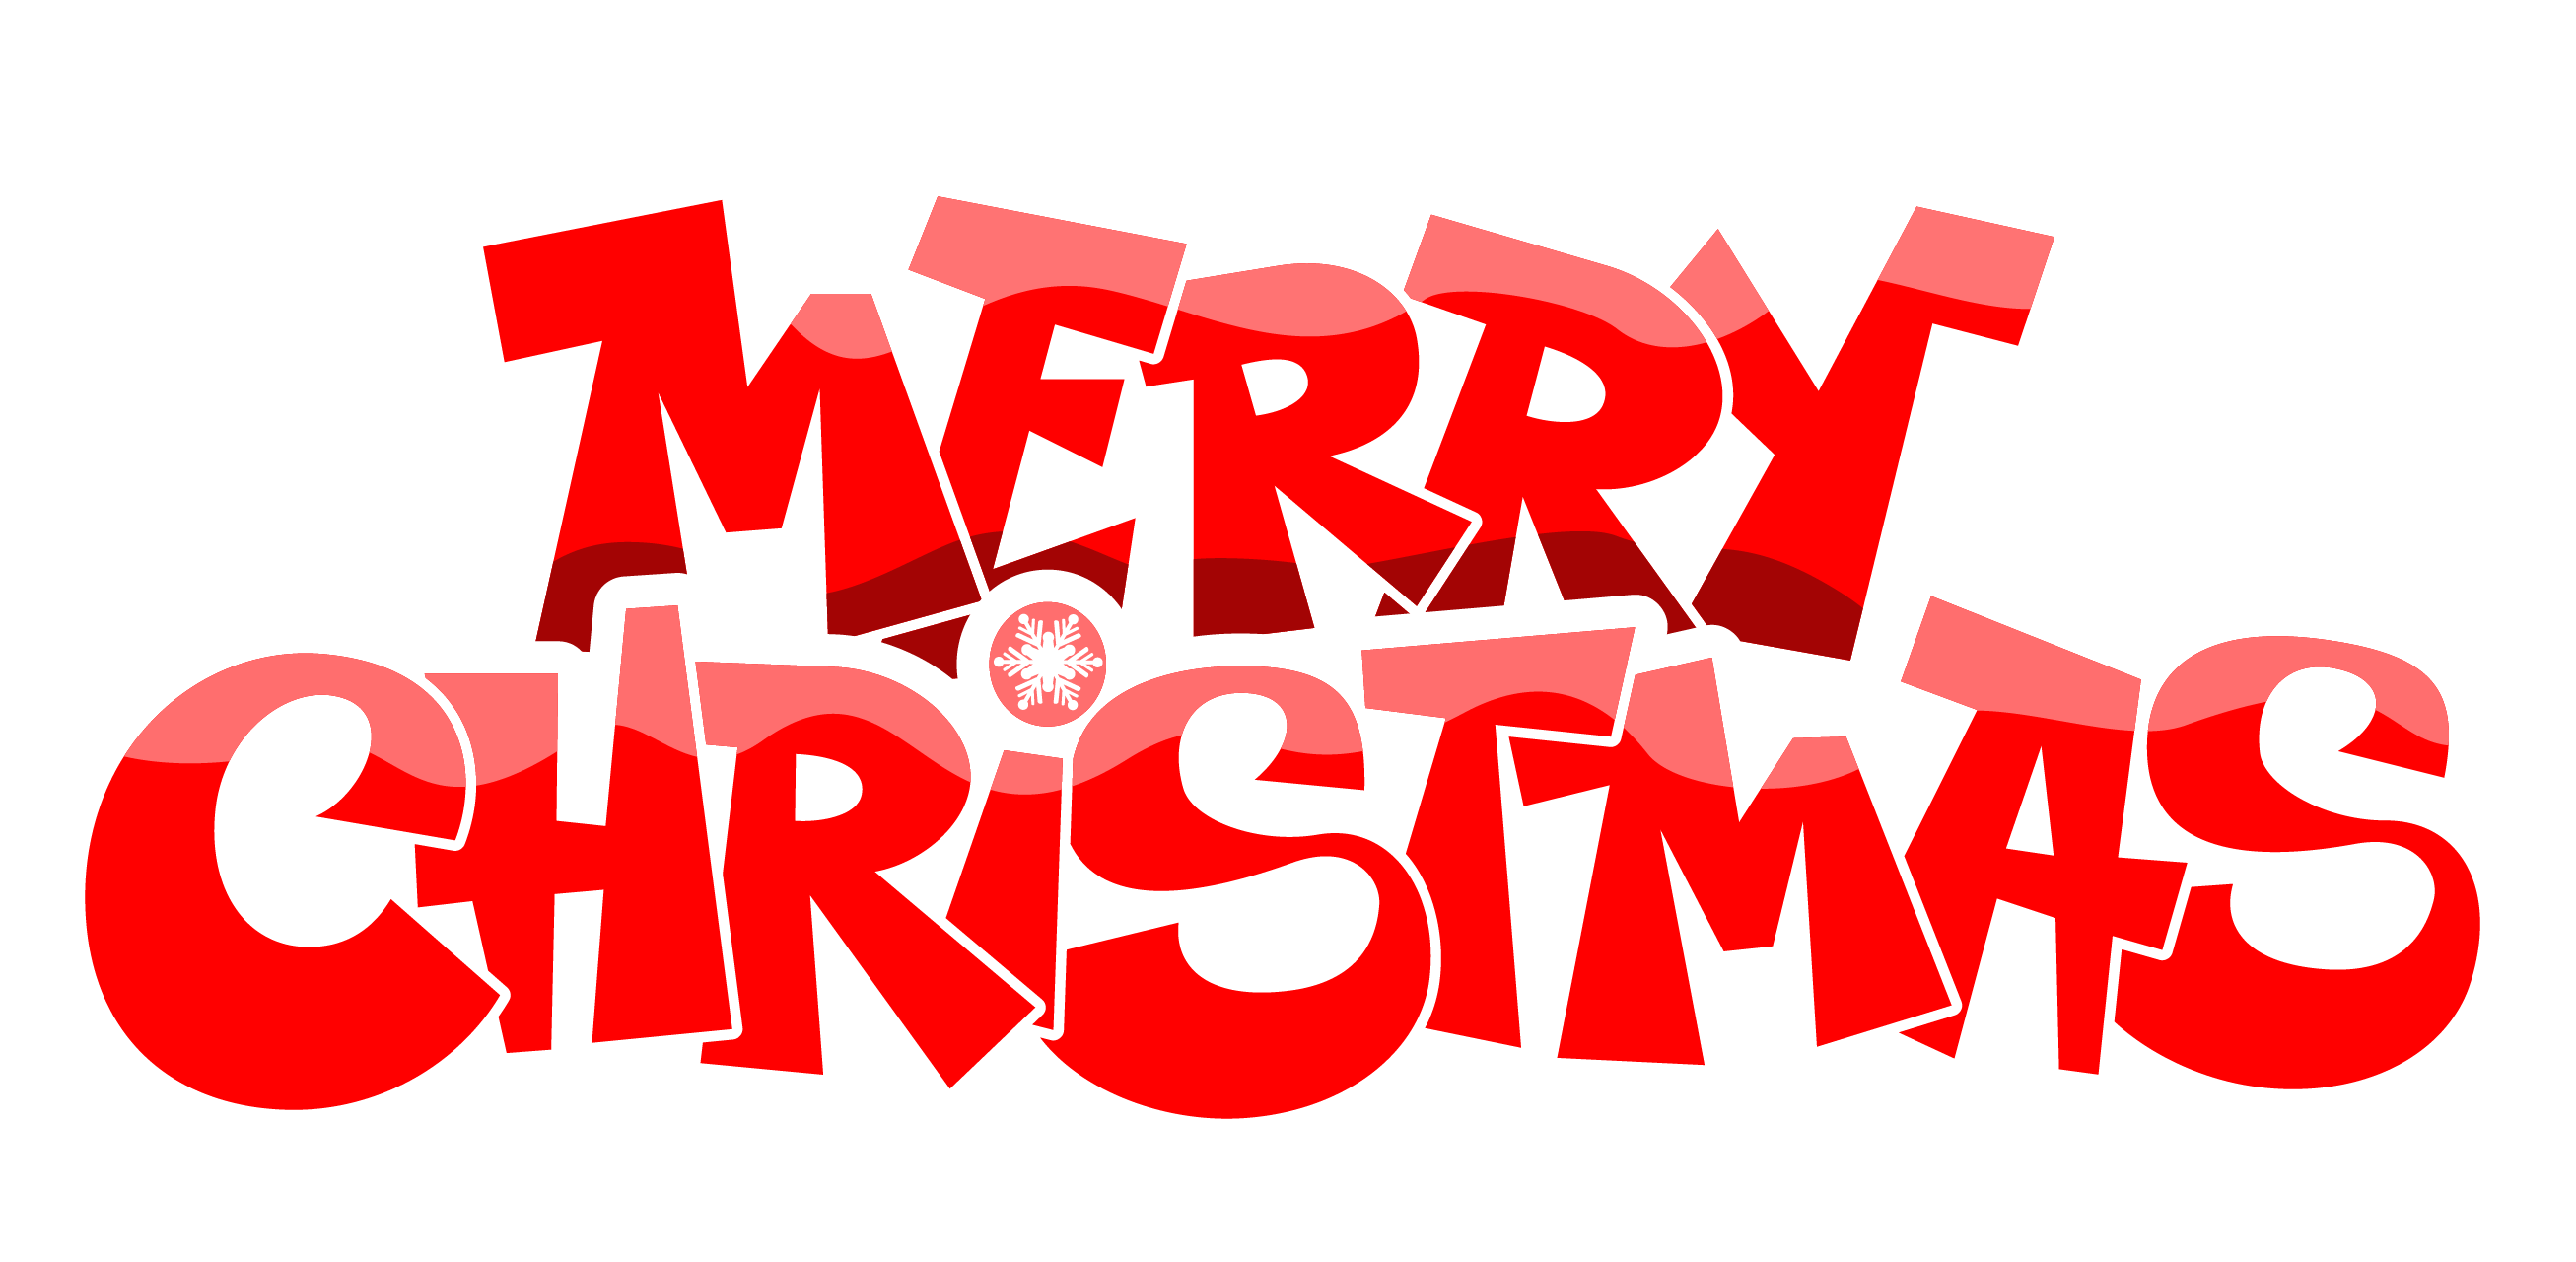 Merry Christmas Text Transparent - Family Day PNG HD Free - Family Love PNG HD